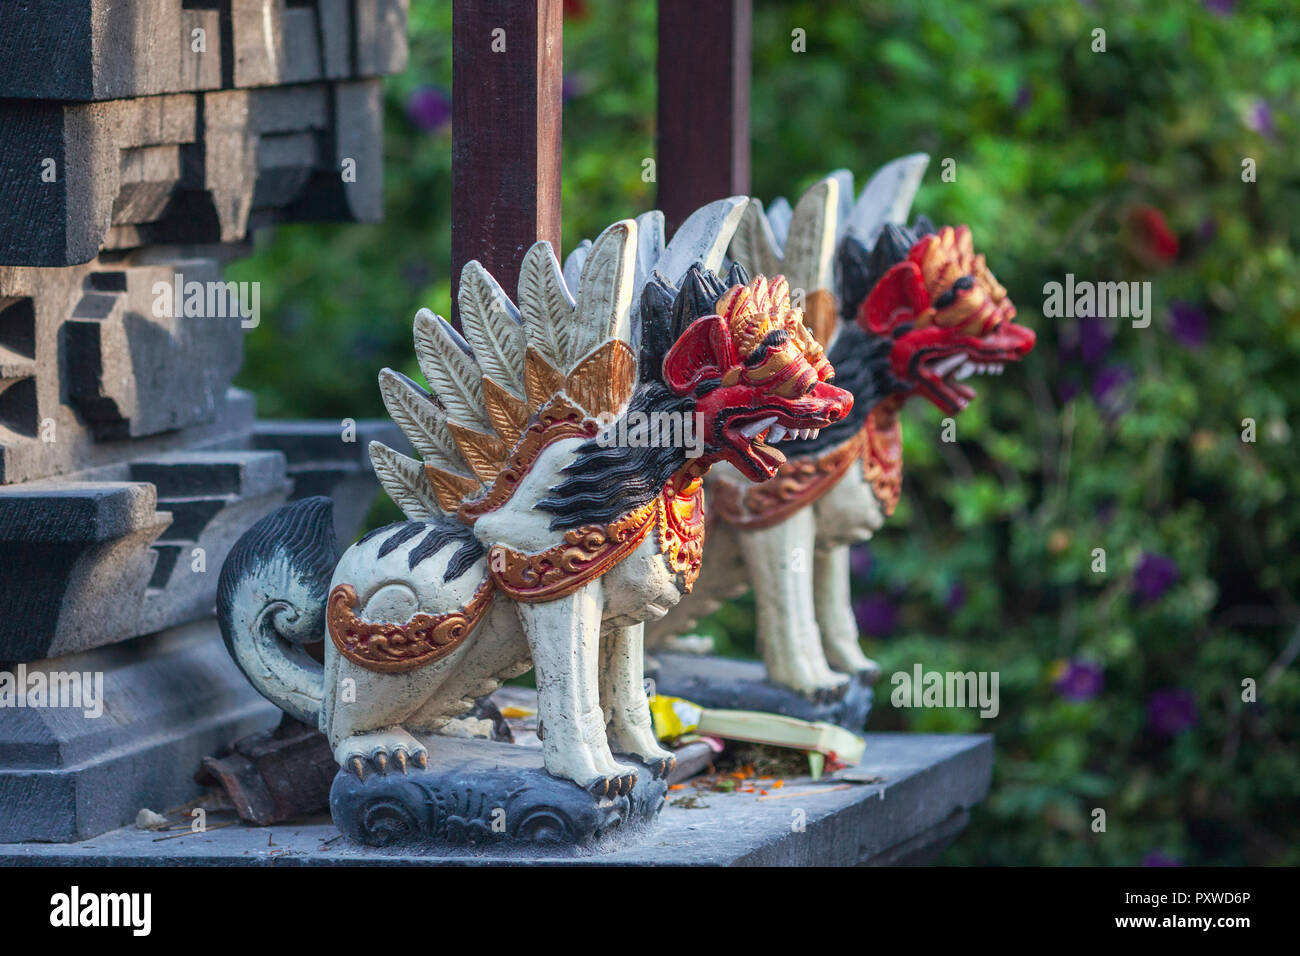 Indonesia, Bali, fierce animal figures at a temple - Stock Image